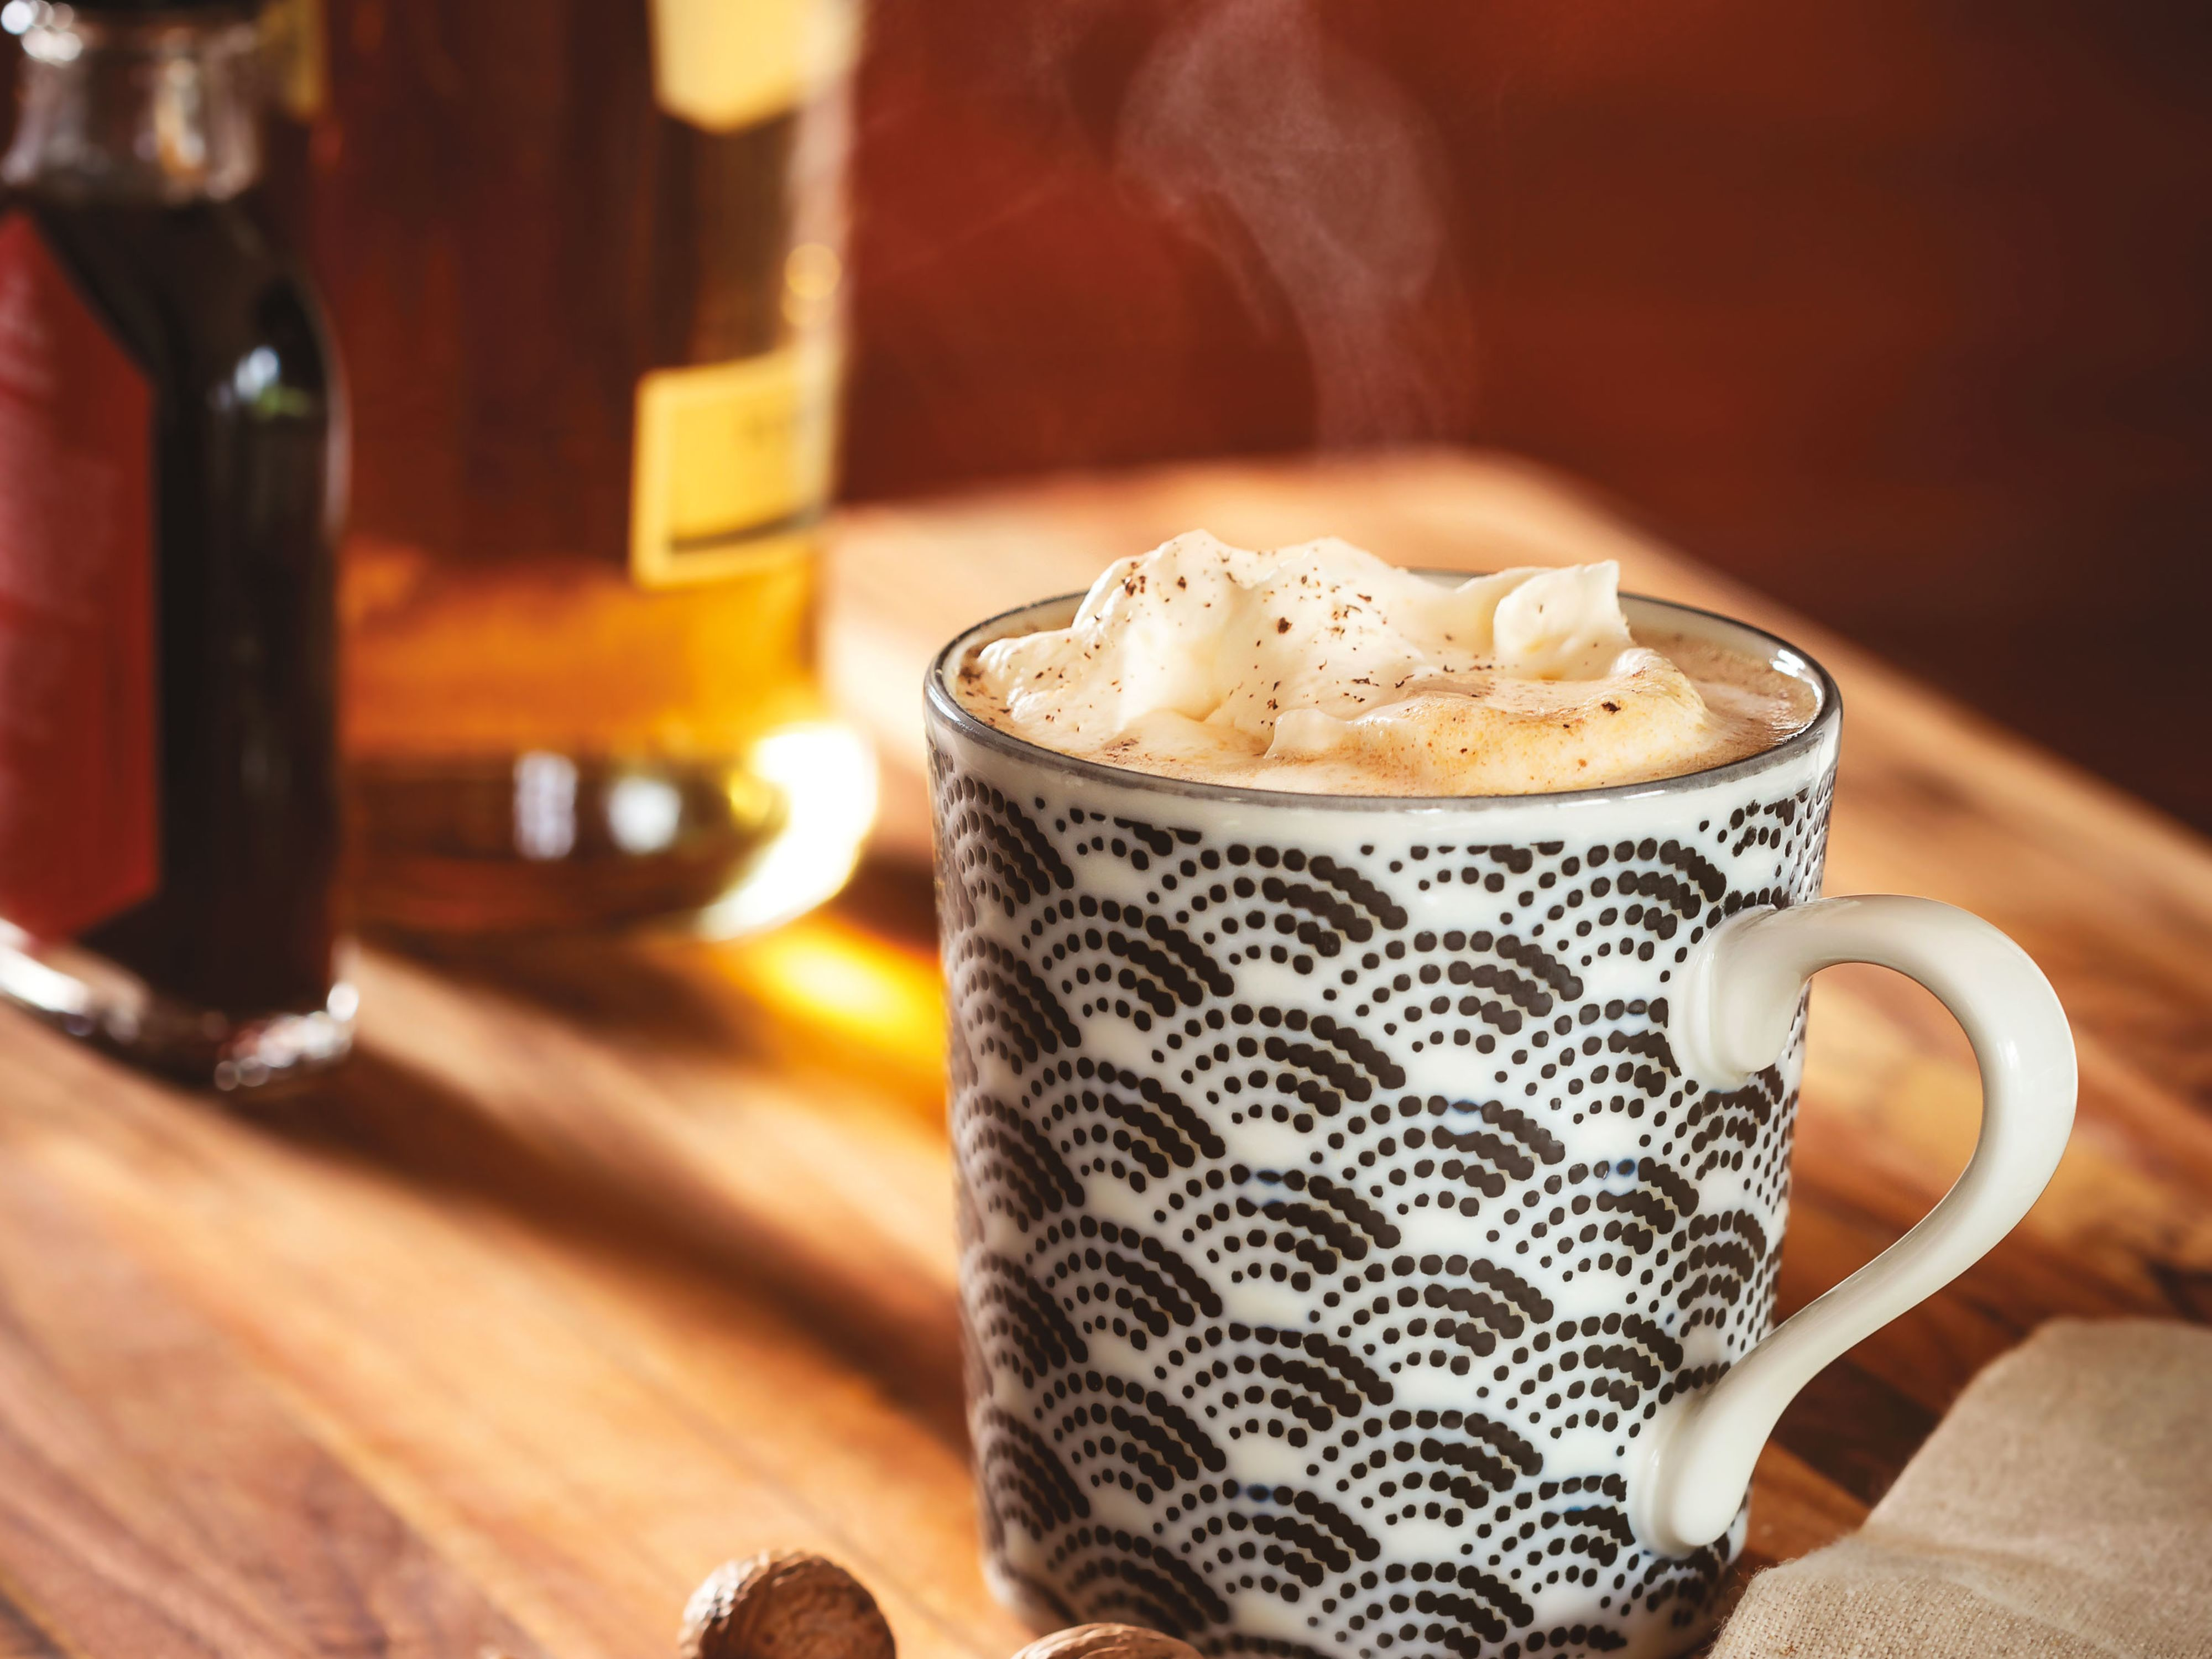 Pomo 0117 winter relax hot buttered rum bpea1w